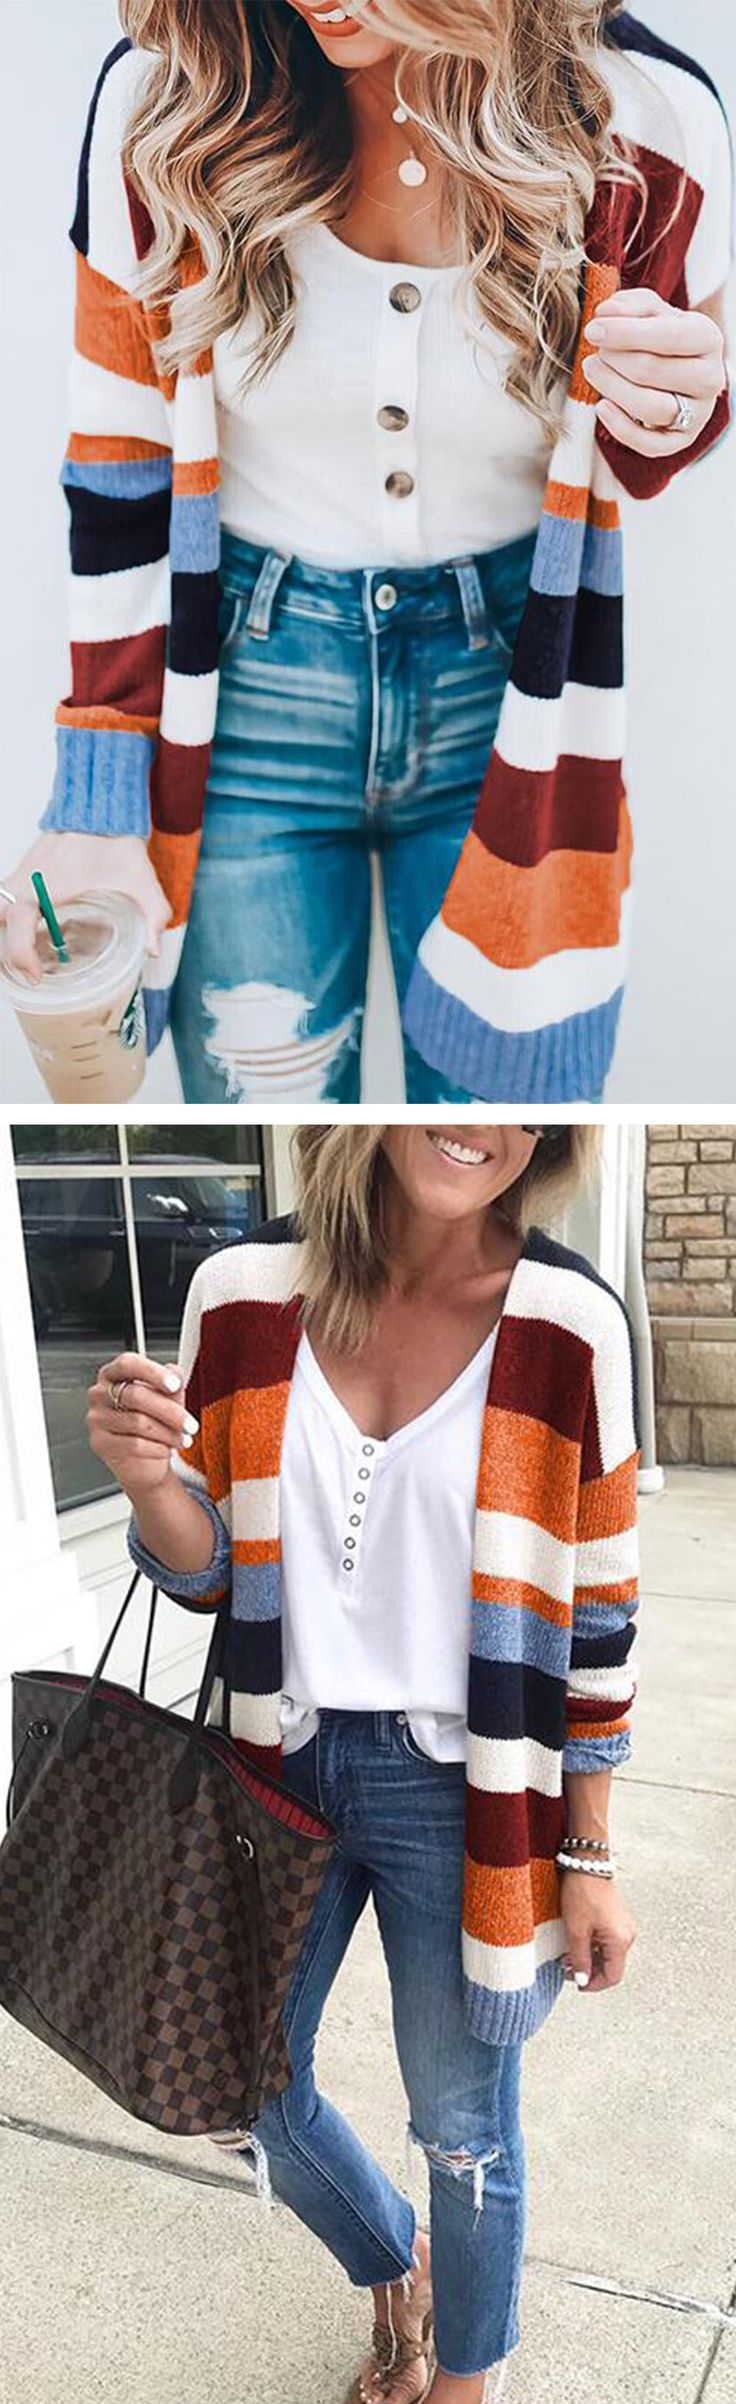 Only $42.99!Chicnico Colorful Striped Cardigan fall fashion trend outfits 2018... 3